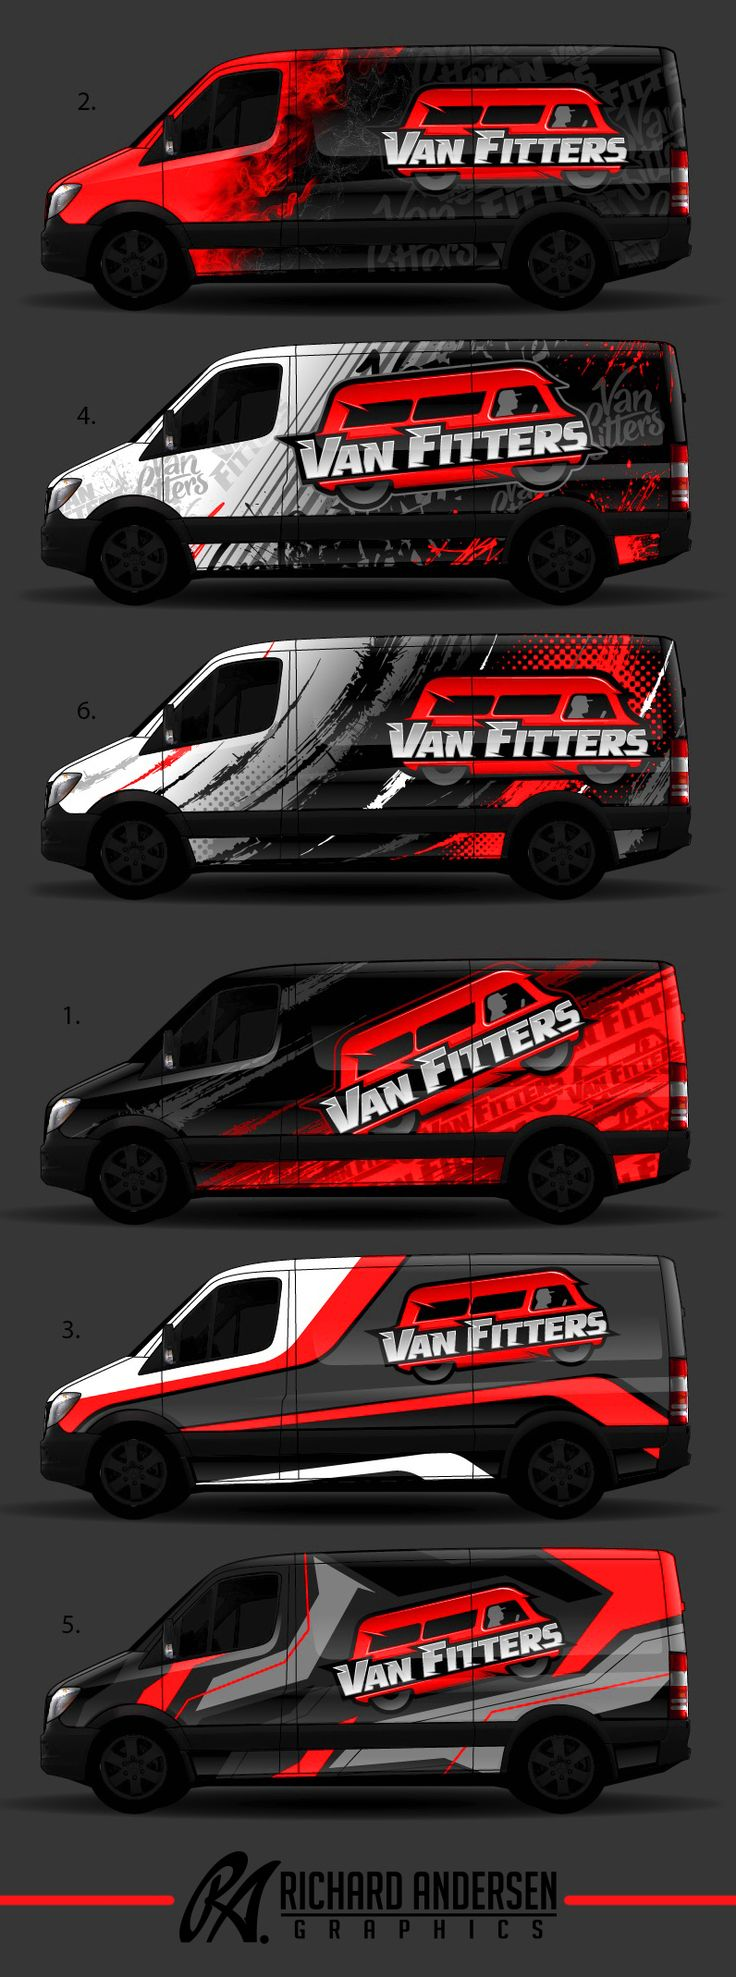 Best Car Wrap Ideas On Pinterest Vehicle Wraps Wraps For - Custom decal graphics on vehiclesgetlaunched custom designed vinyl graphics decals turn heads and